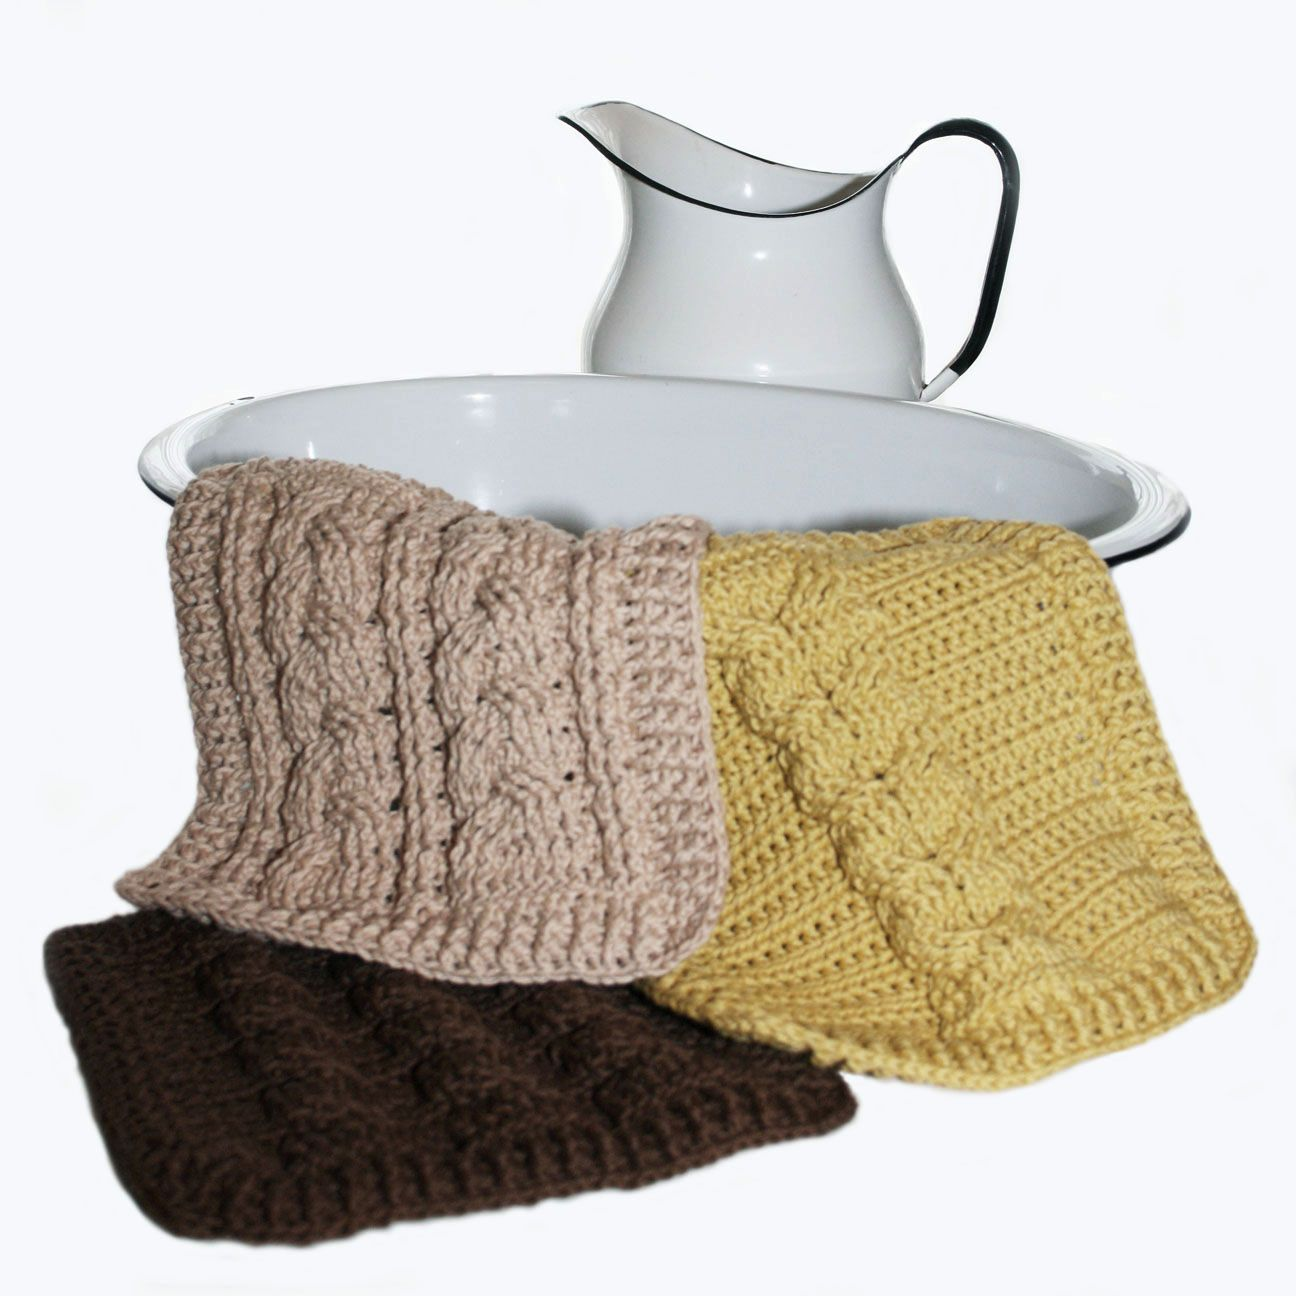 Cable Knit Dishcloth Pattern : Crochet Cable Sampler Dishcloths Pattern - Knitting Patterns and Crochet Patt...